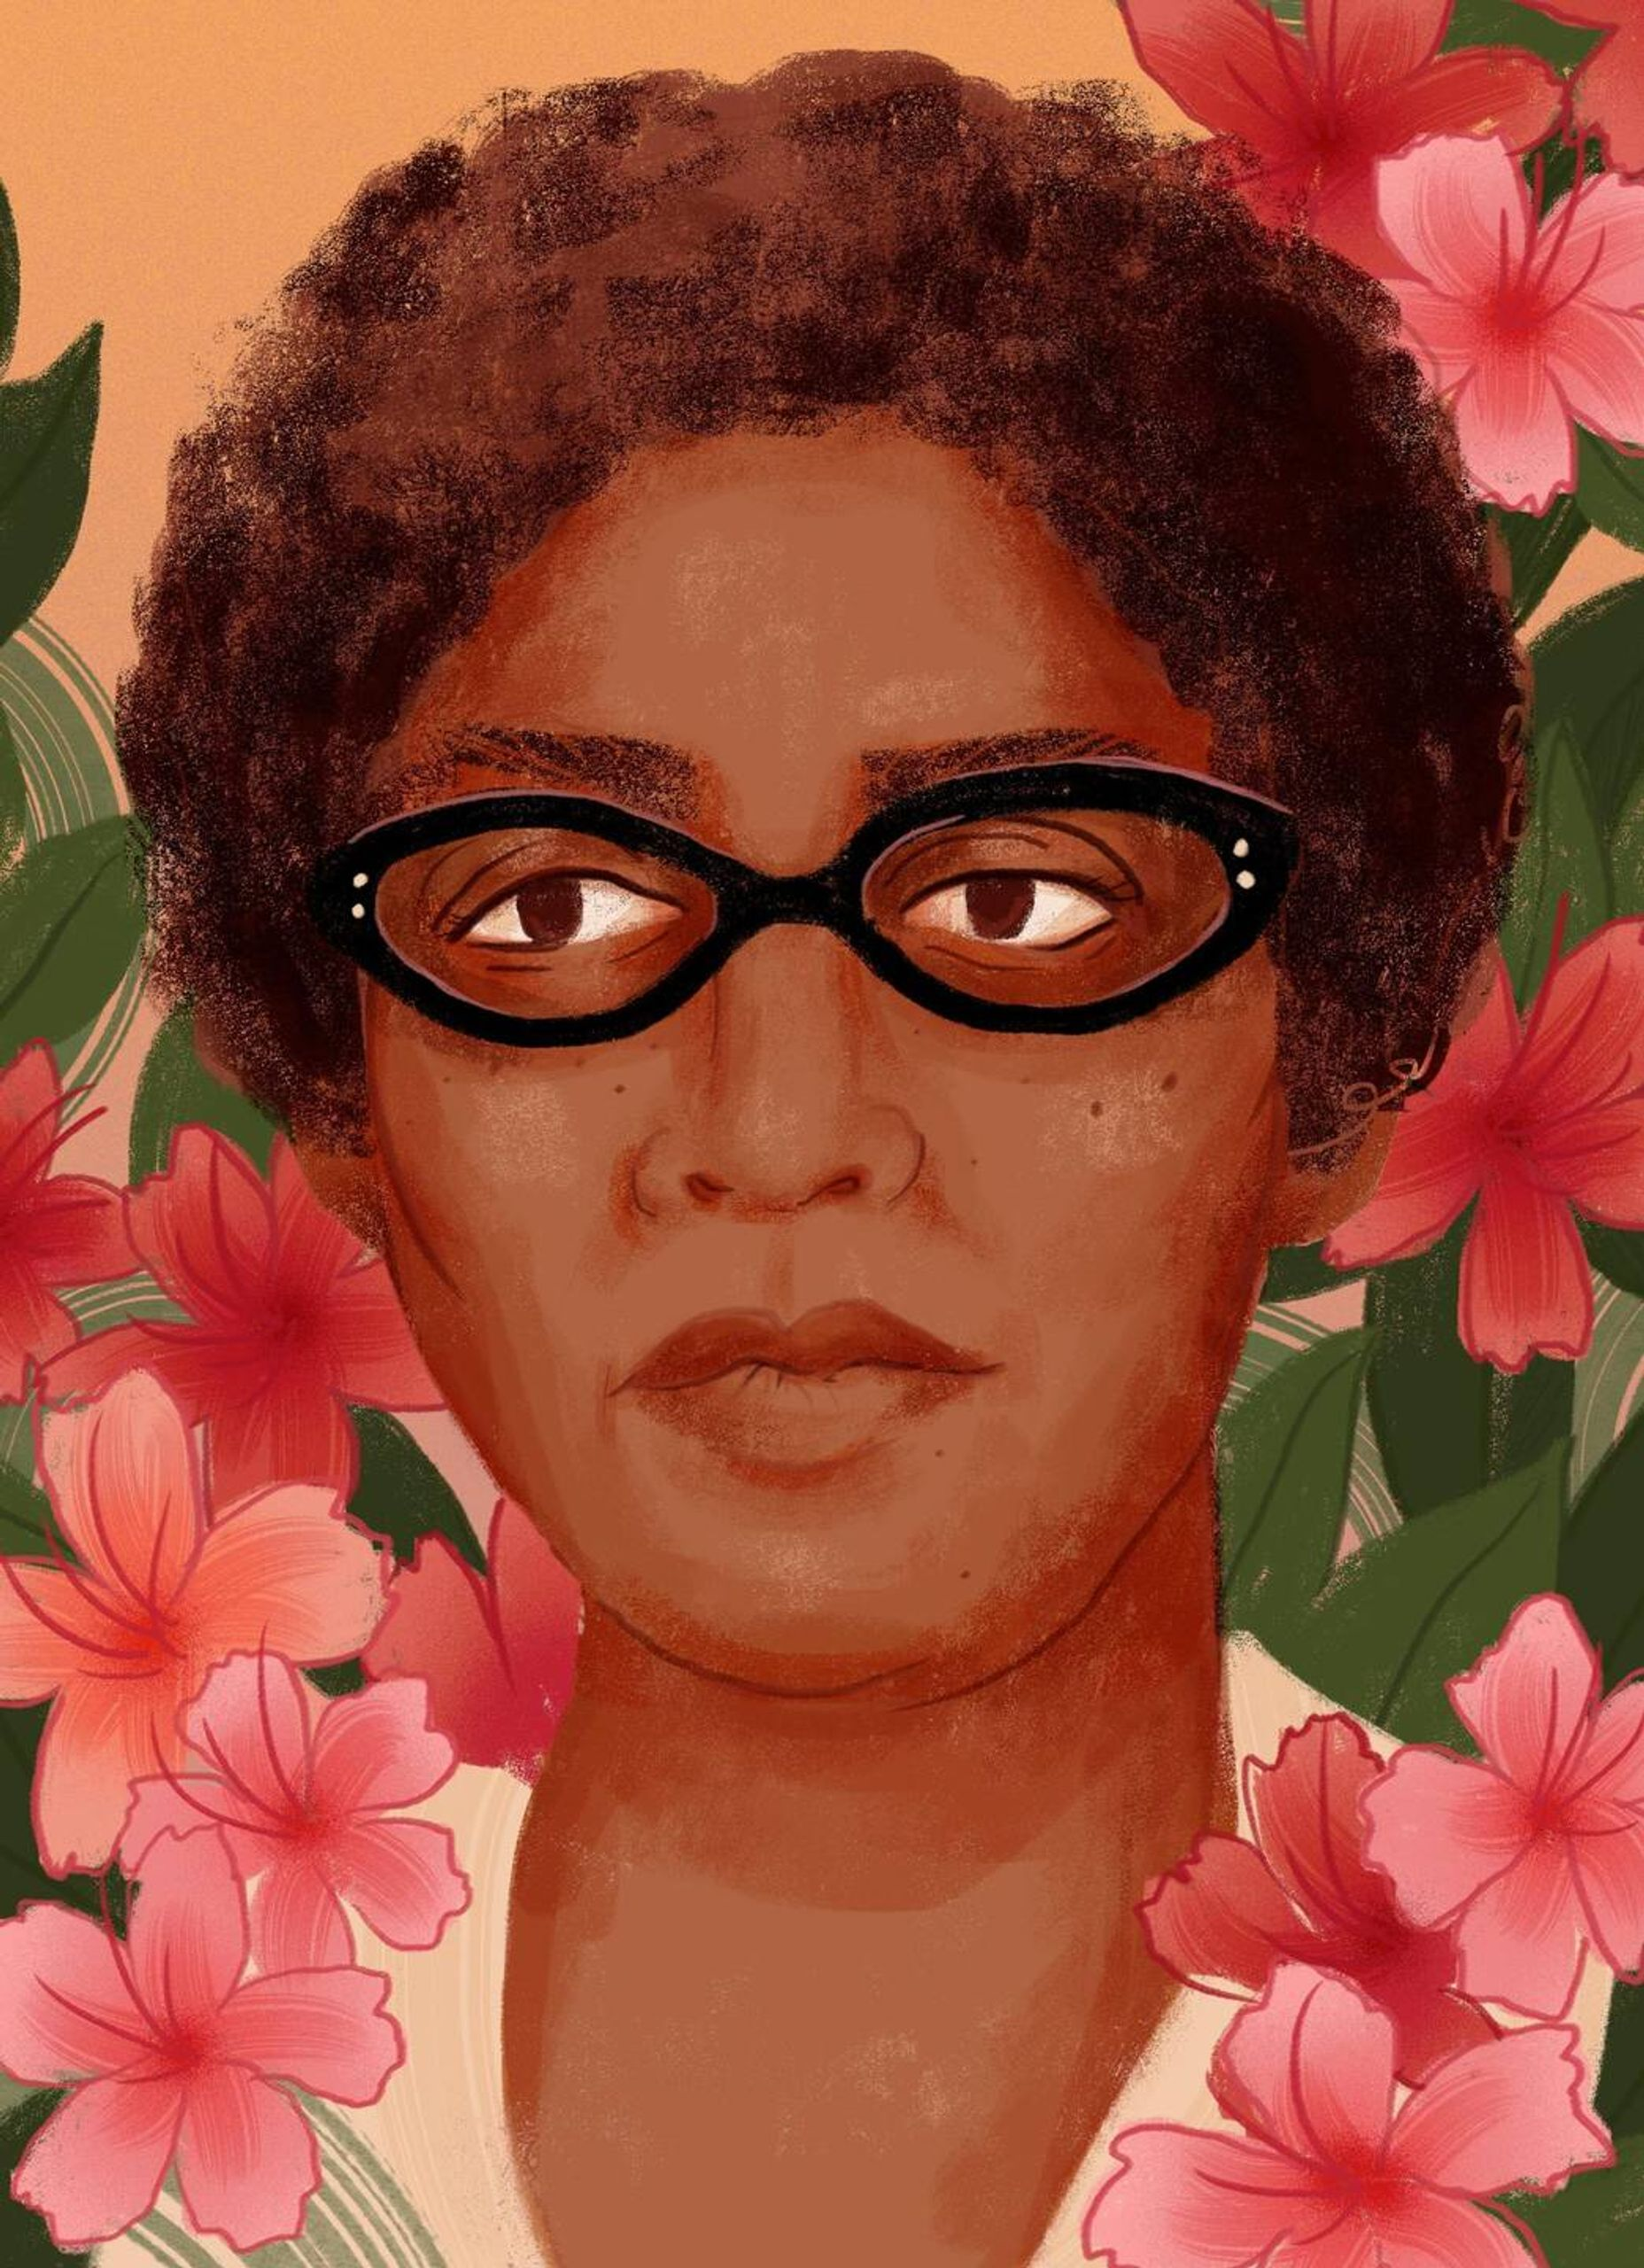 Illustration of Audre Lorde by Stephanie Kubo. Rewire PBS Our Future She Votes